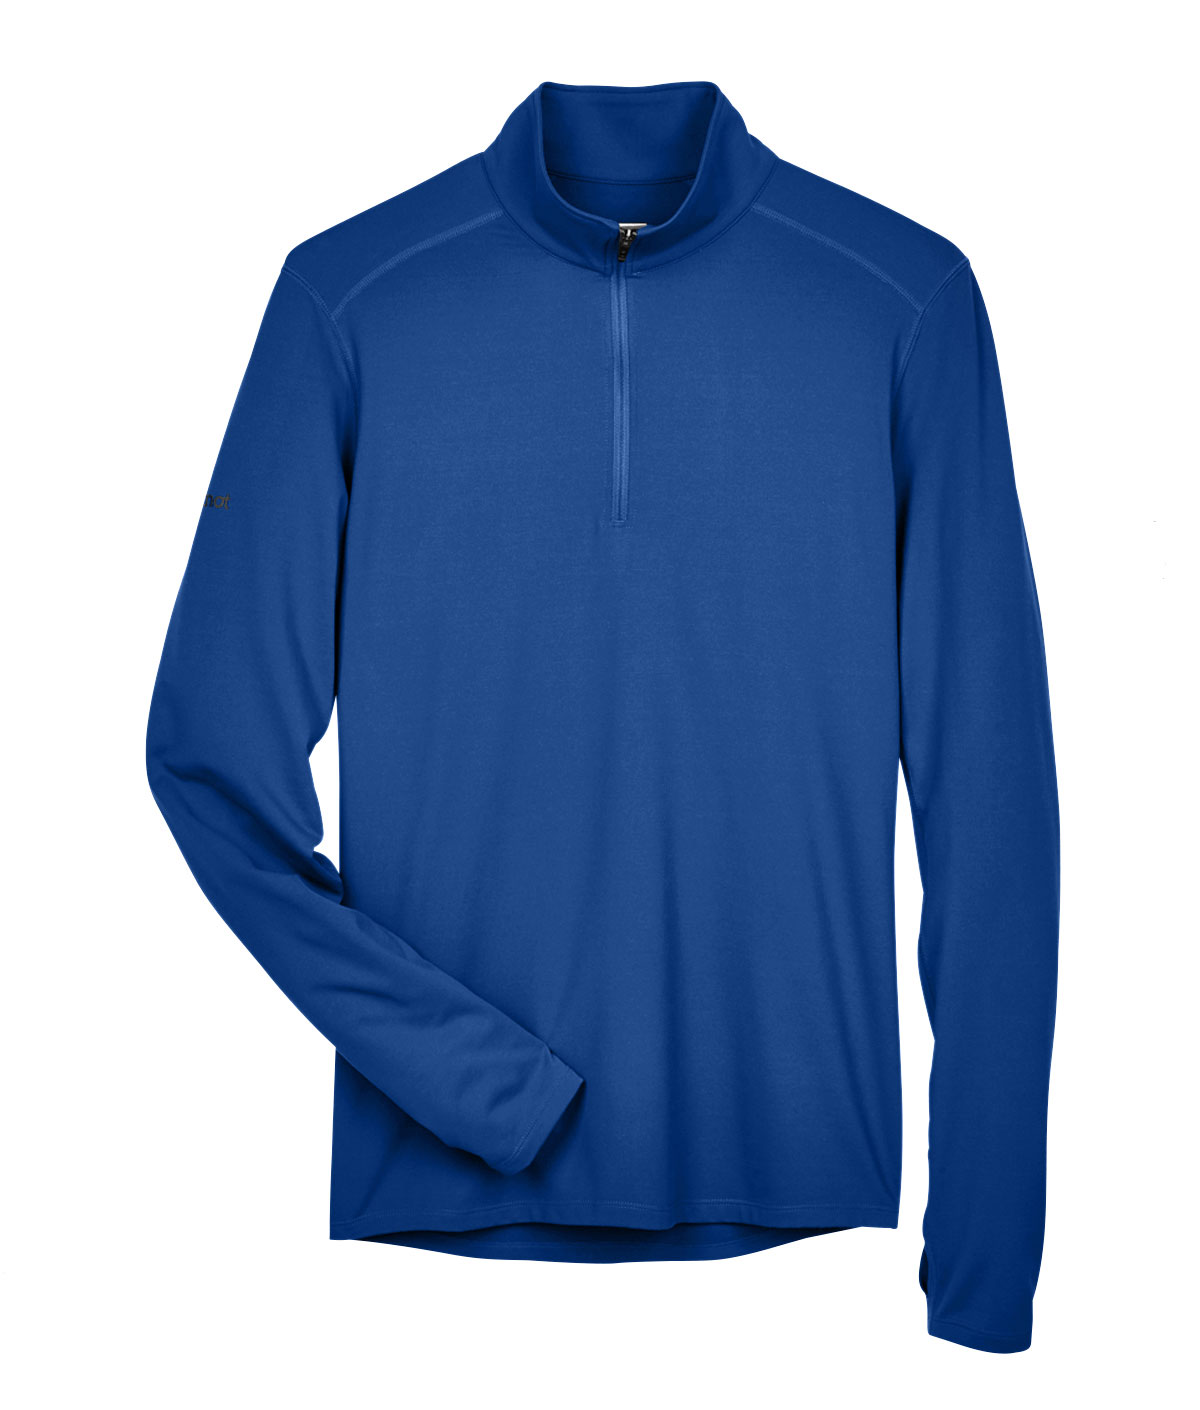 Marmot Mens Harrier Half Zip Pullover